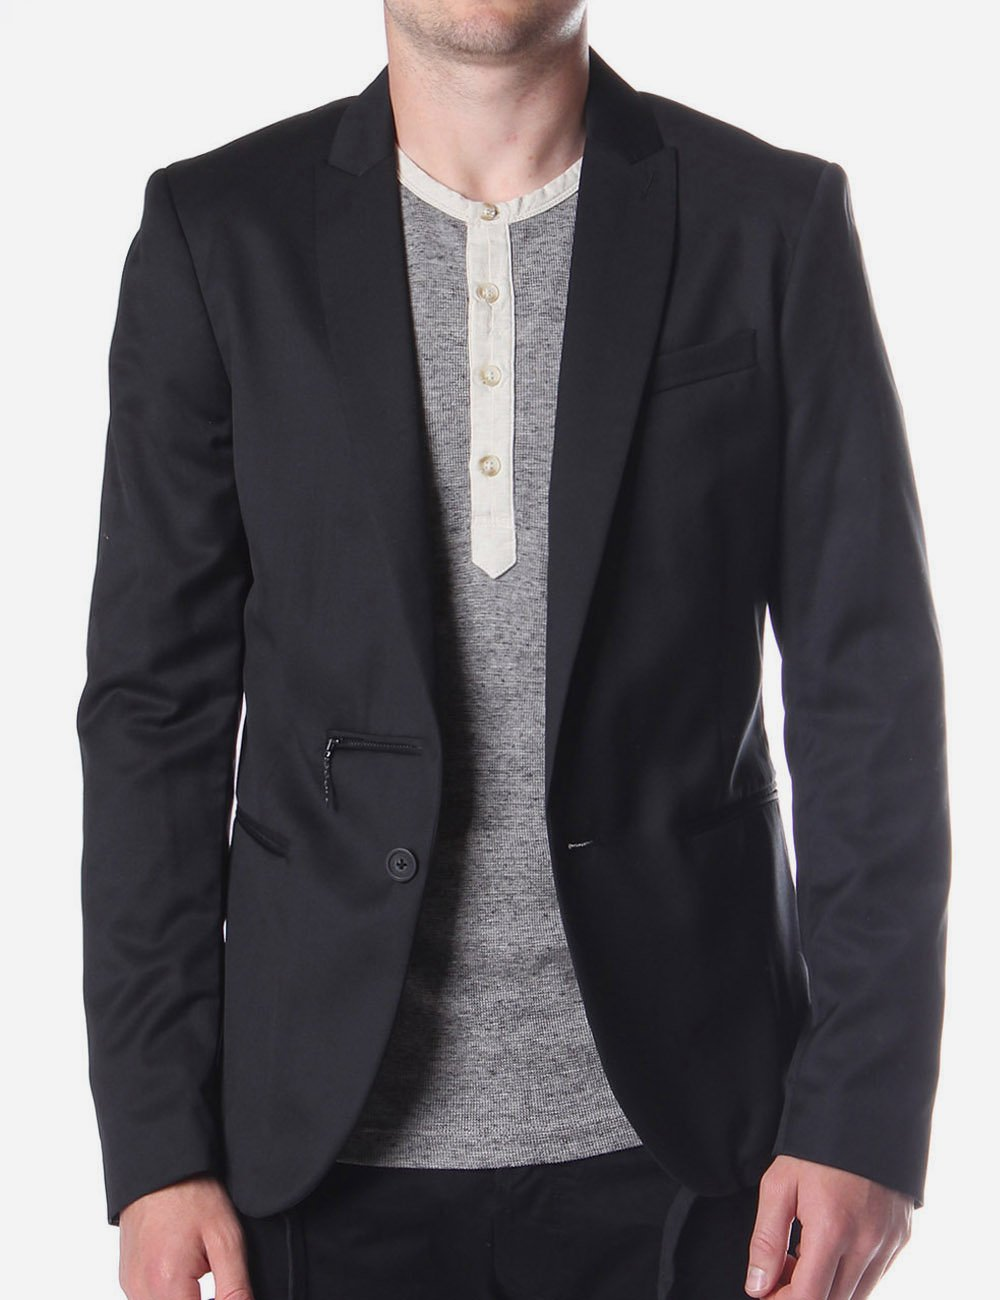 Top 10 Most Popular Men Blazers of all Time - Best selling Brands - diesel blazer mens (1)